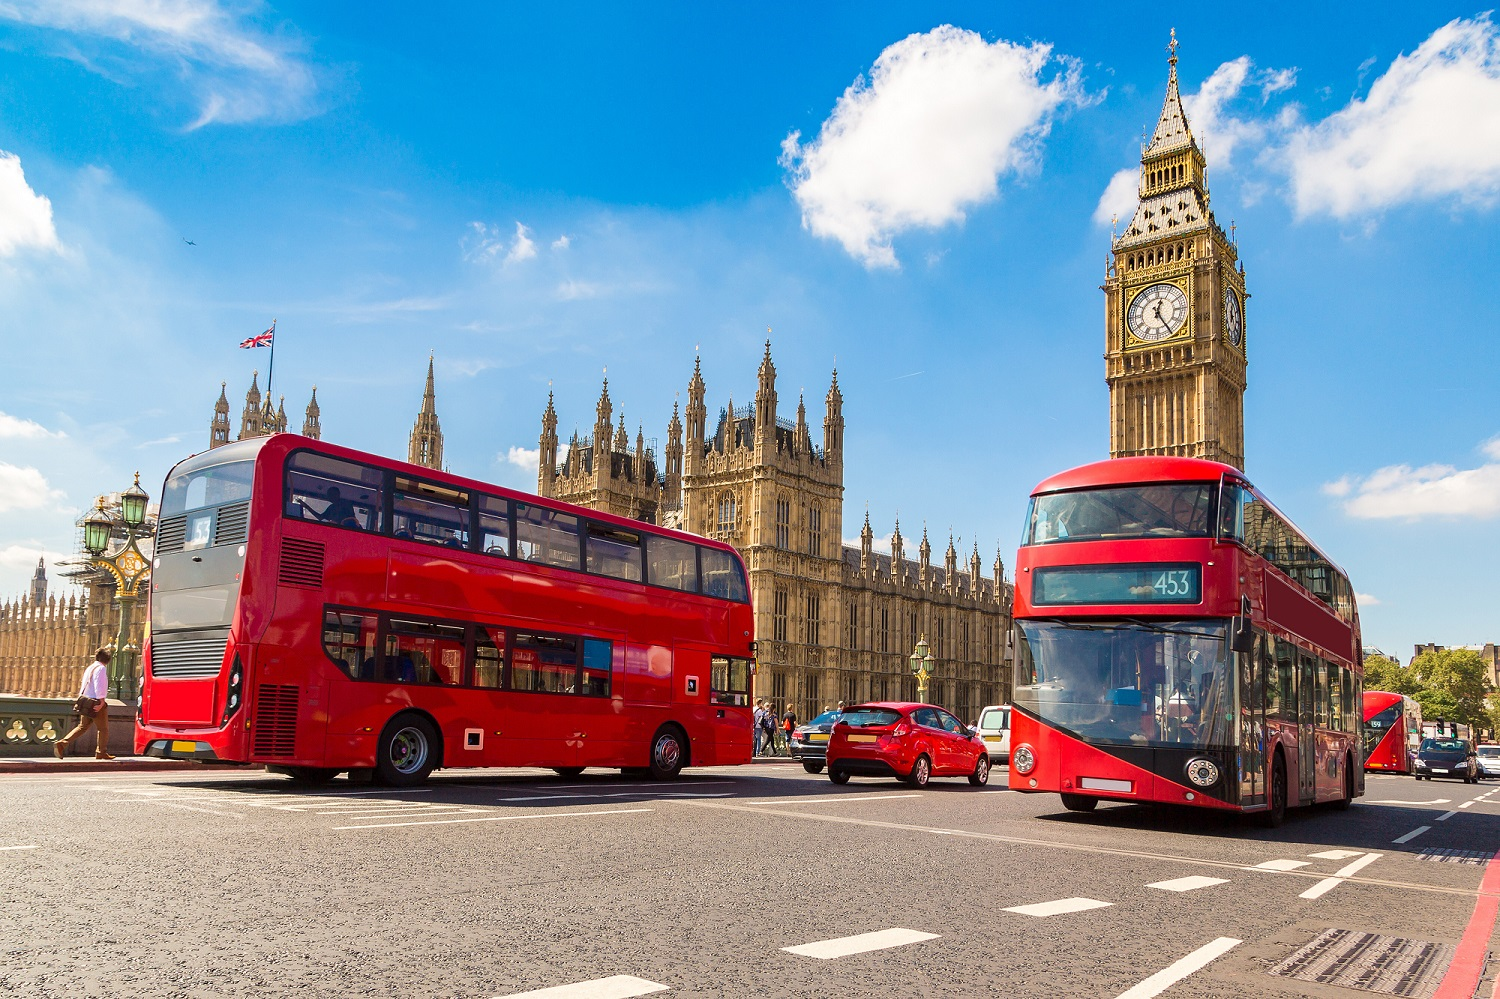 London road with Big Ben and Westminster Bridge in the background and red double decker buses and cars in the foreground